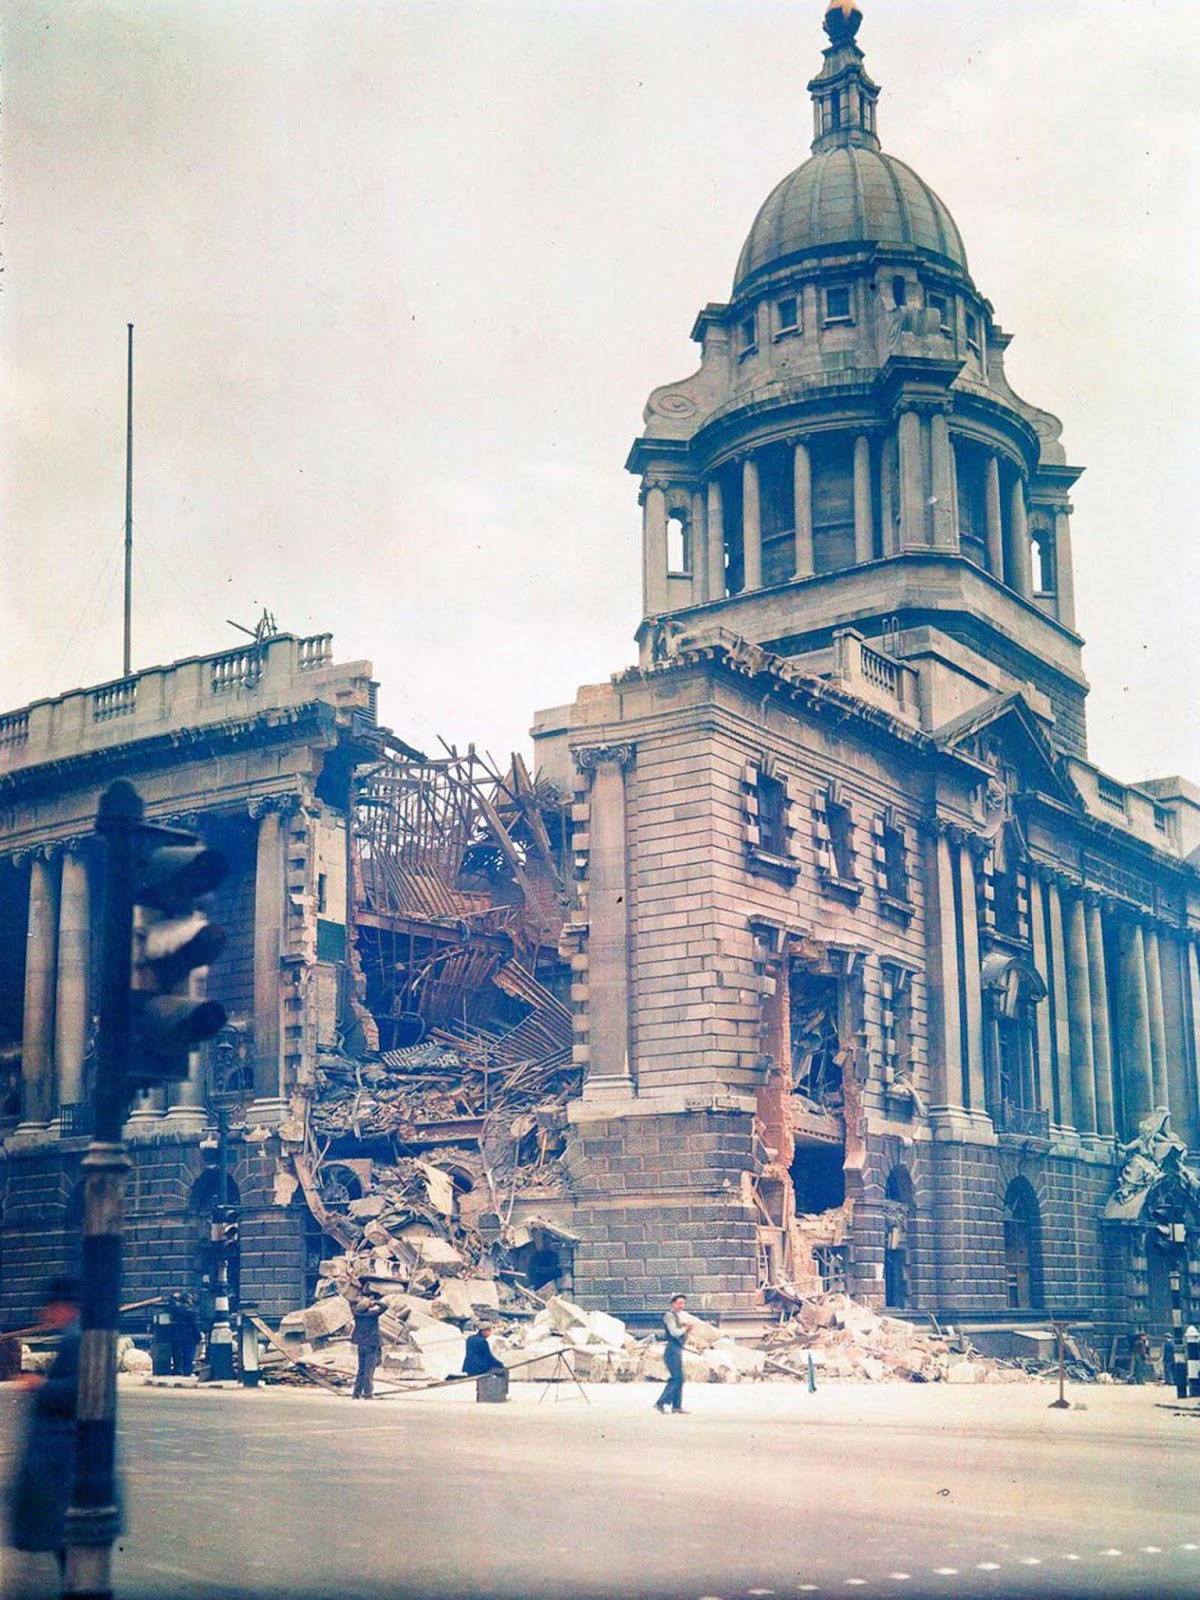 The Old Bailey law courts, damaged by German bombing. Dec. 10, 1941.